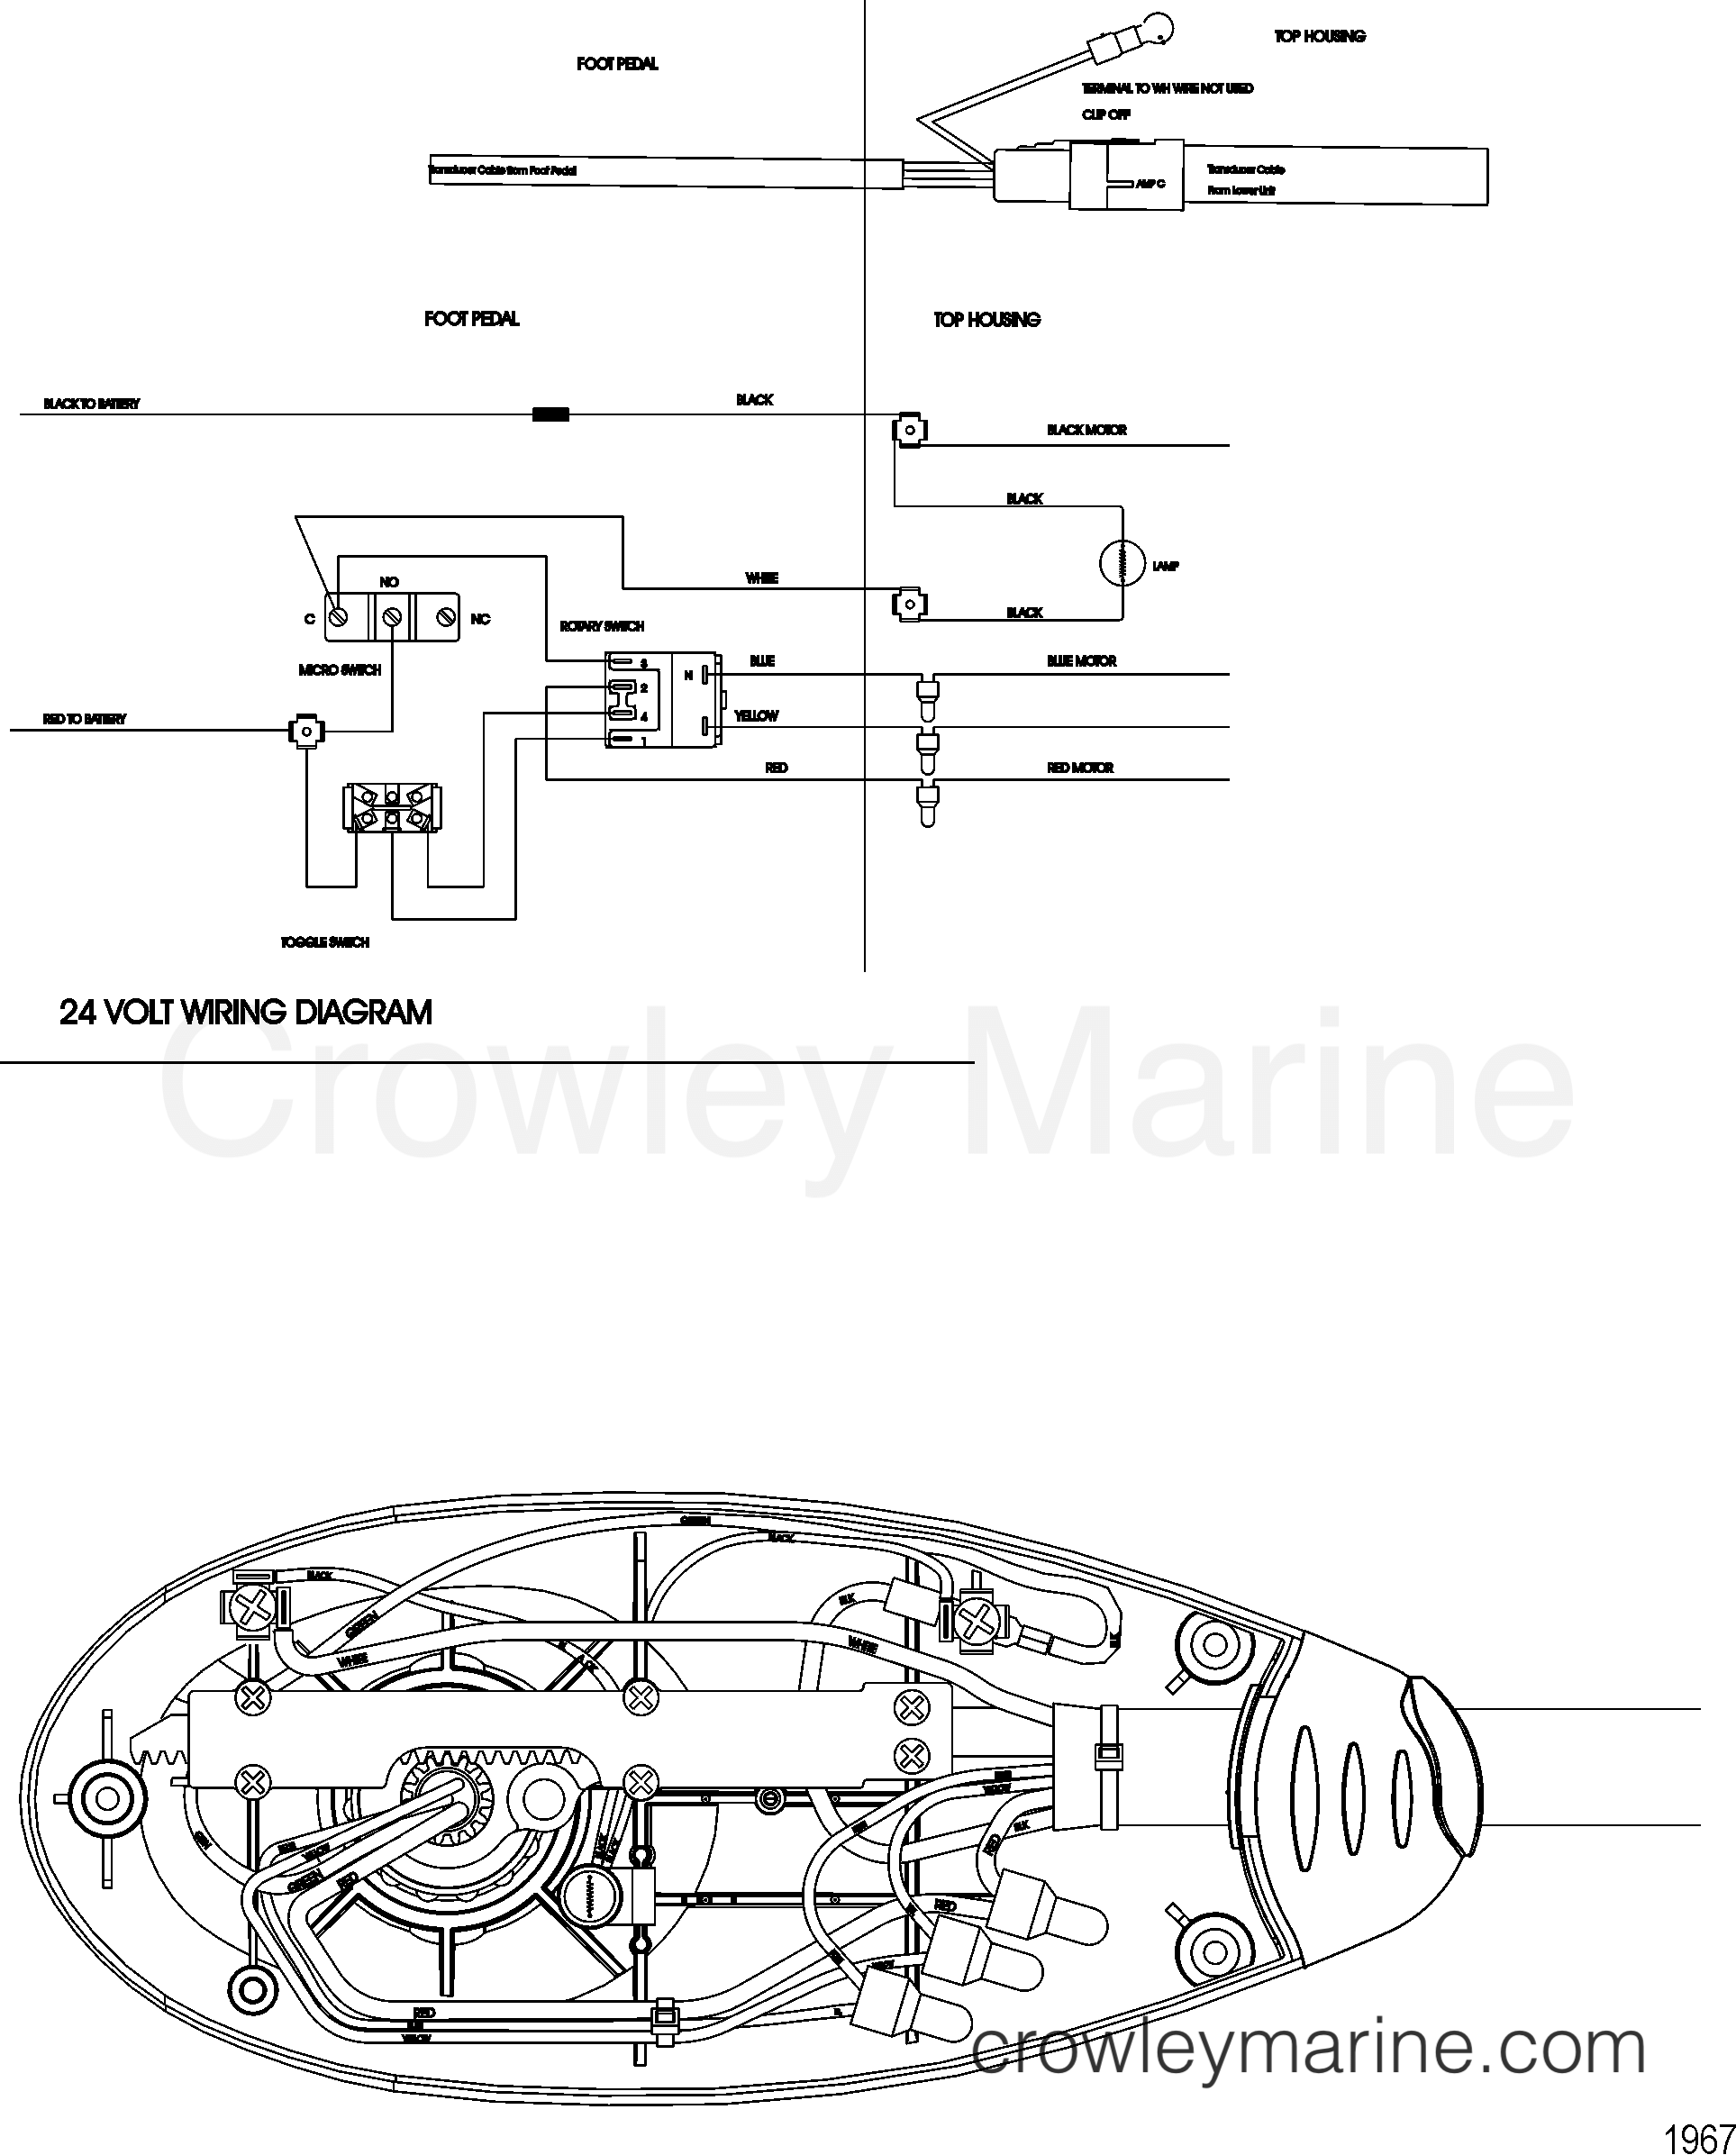 2010 MotorGuide 24V [MOTORGUIDE] - 921310440 WIRE DIAGRAM(MODEL FW71PFB) section